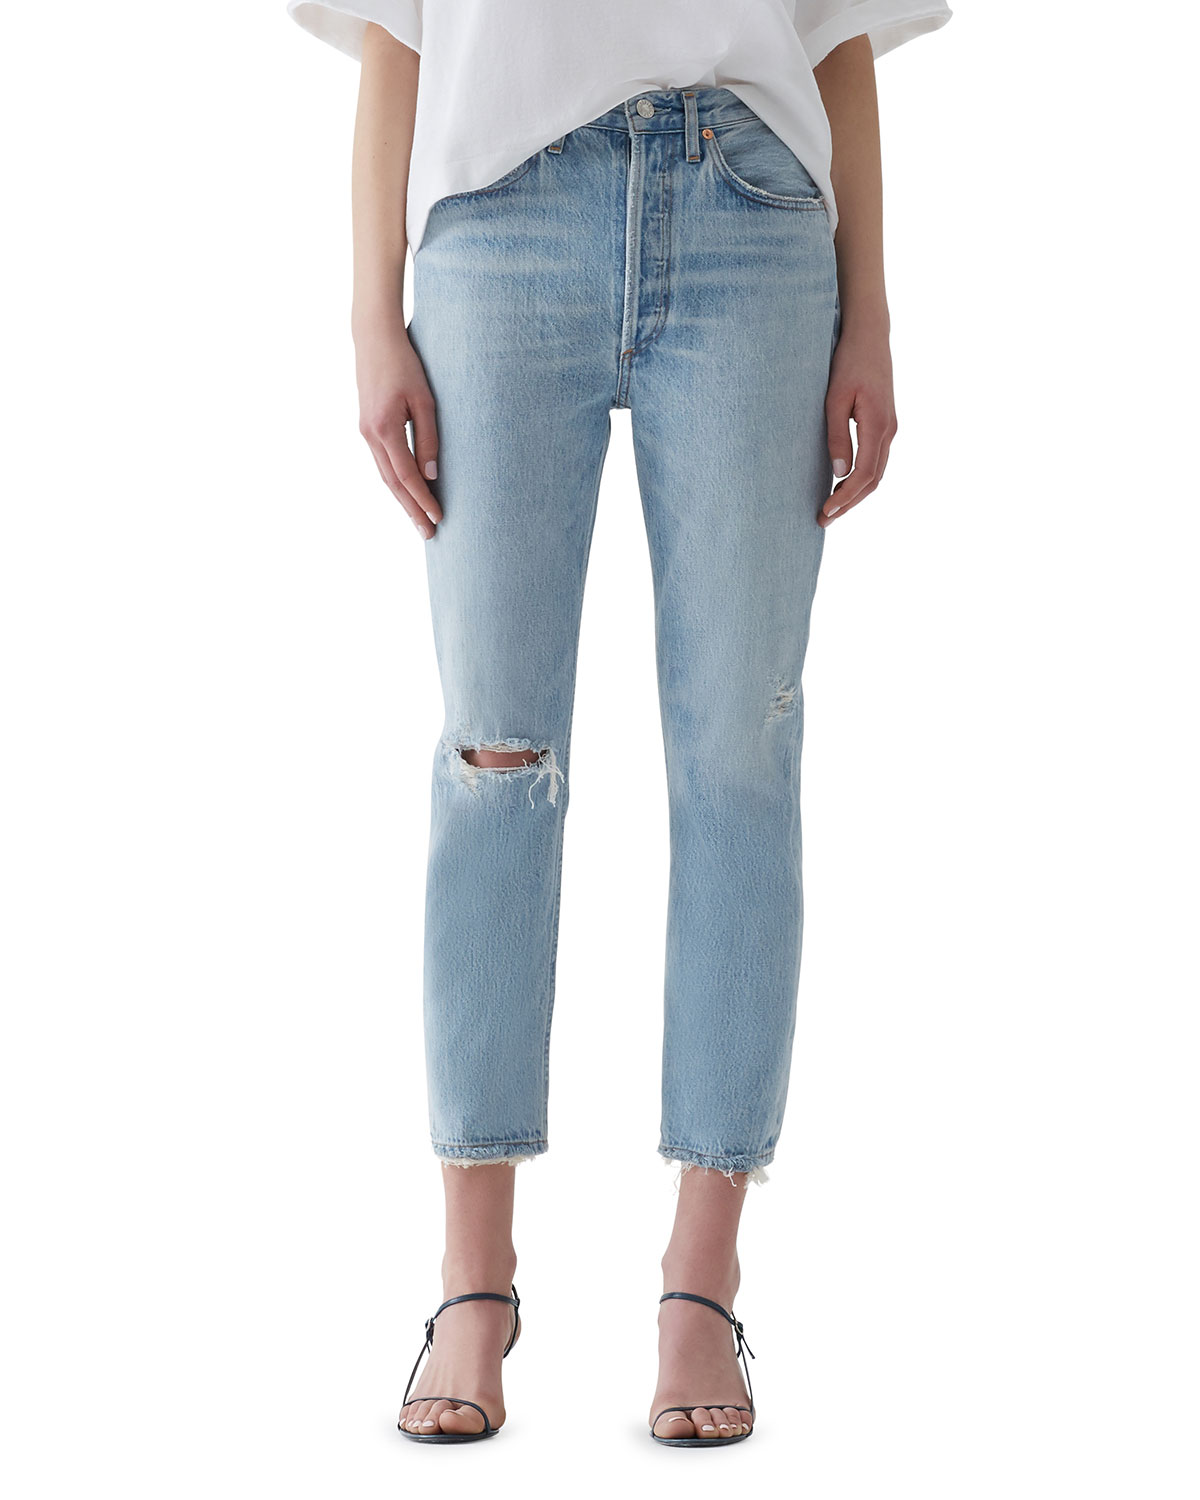 Agolde Jeans RILEY HIGH-RISE STRAIGHT CROP JEANS